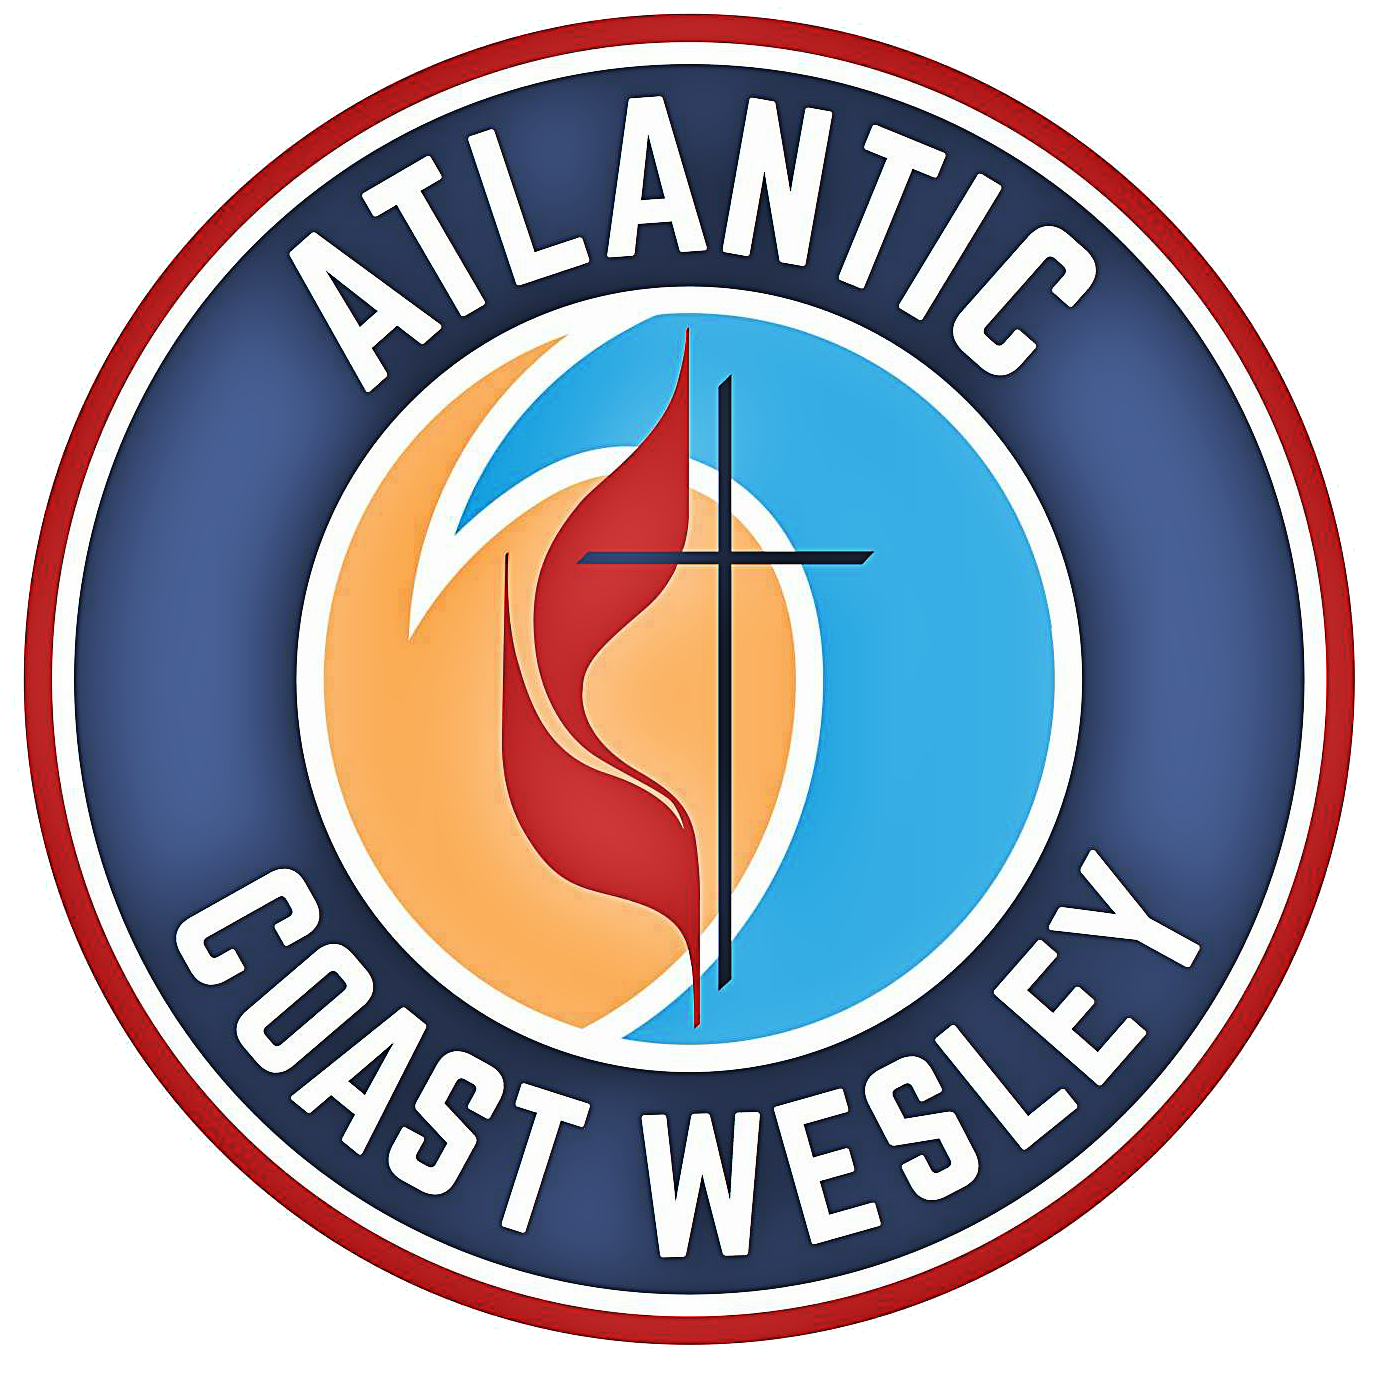 Atlantic Coast Wesley Foundation